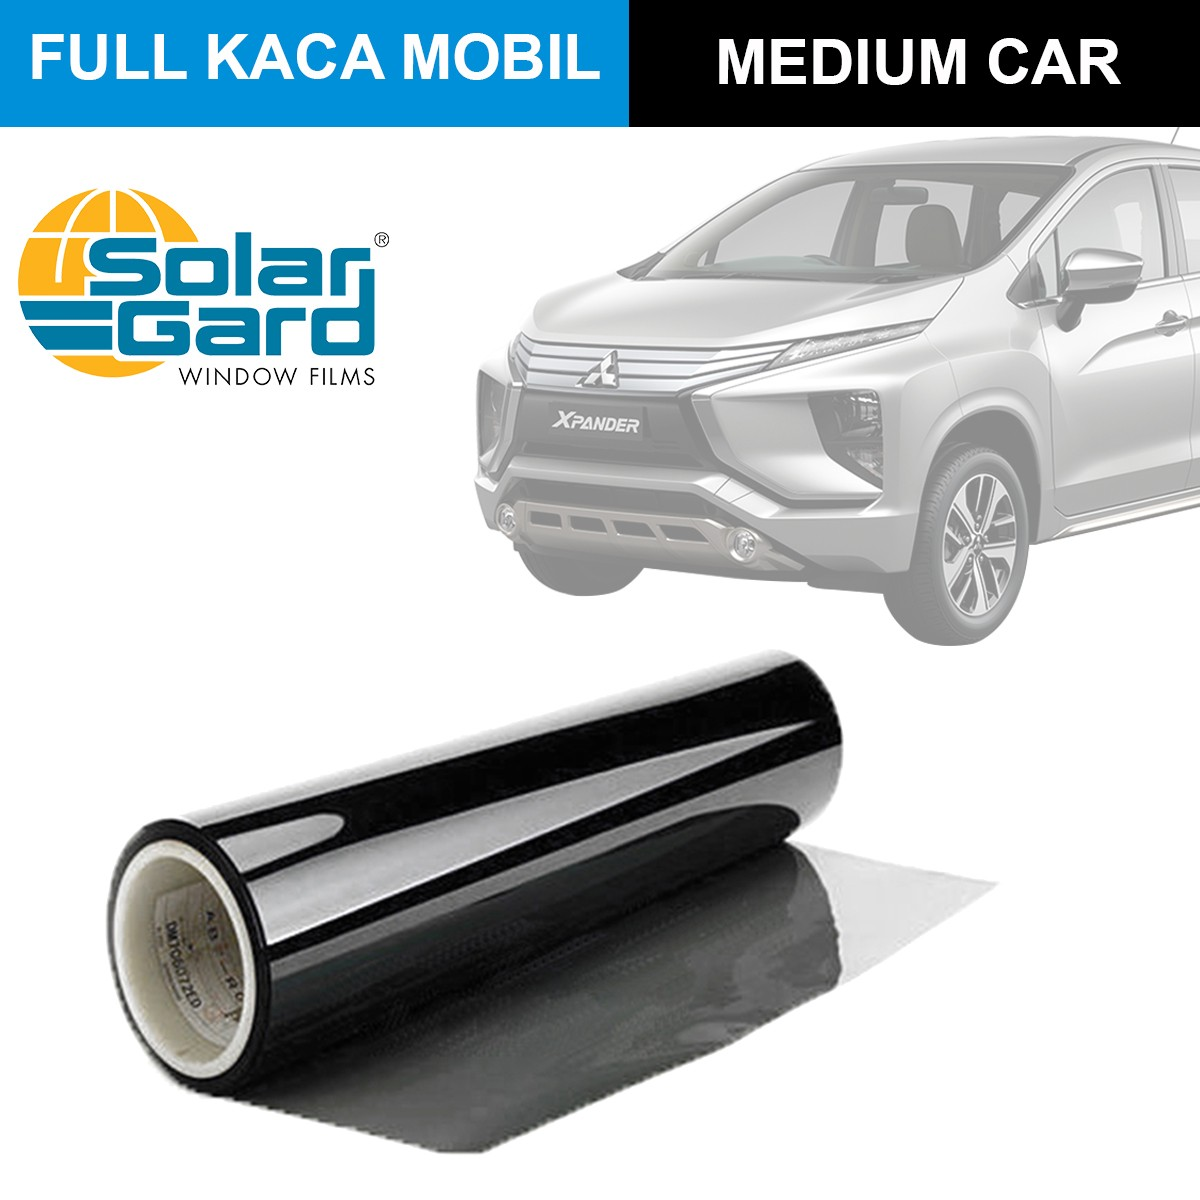 KACA FILM SOLAR GARD MOST FAMOUS - (MEDIUM CAR) FULL KACA